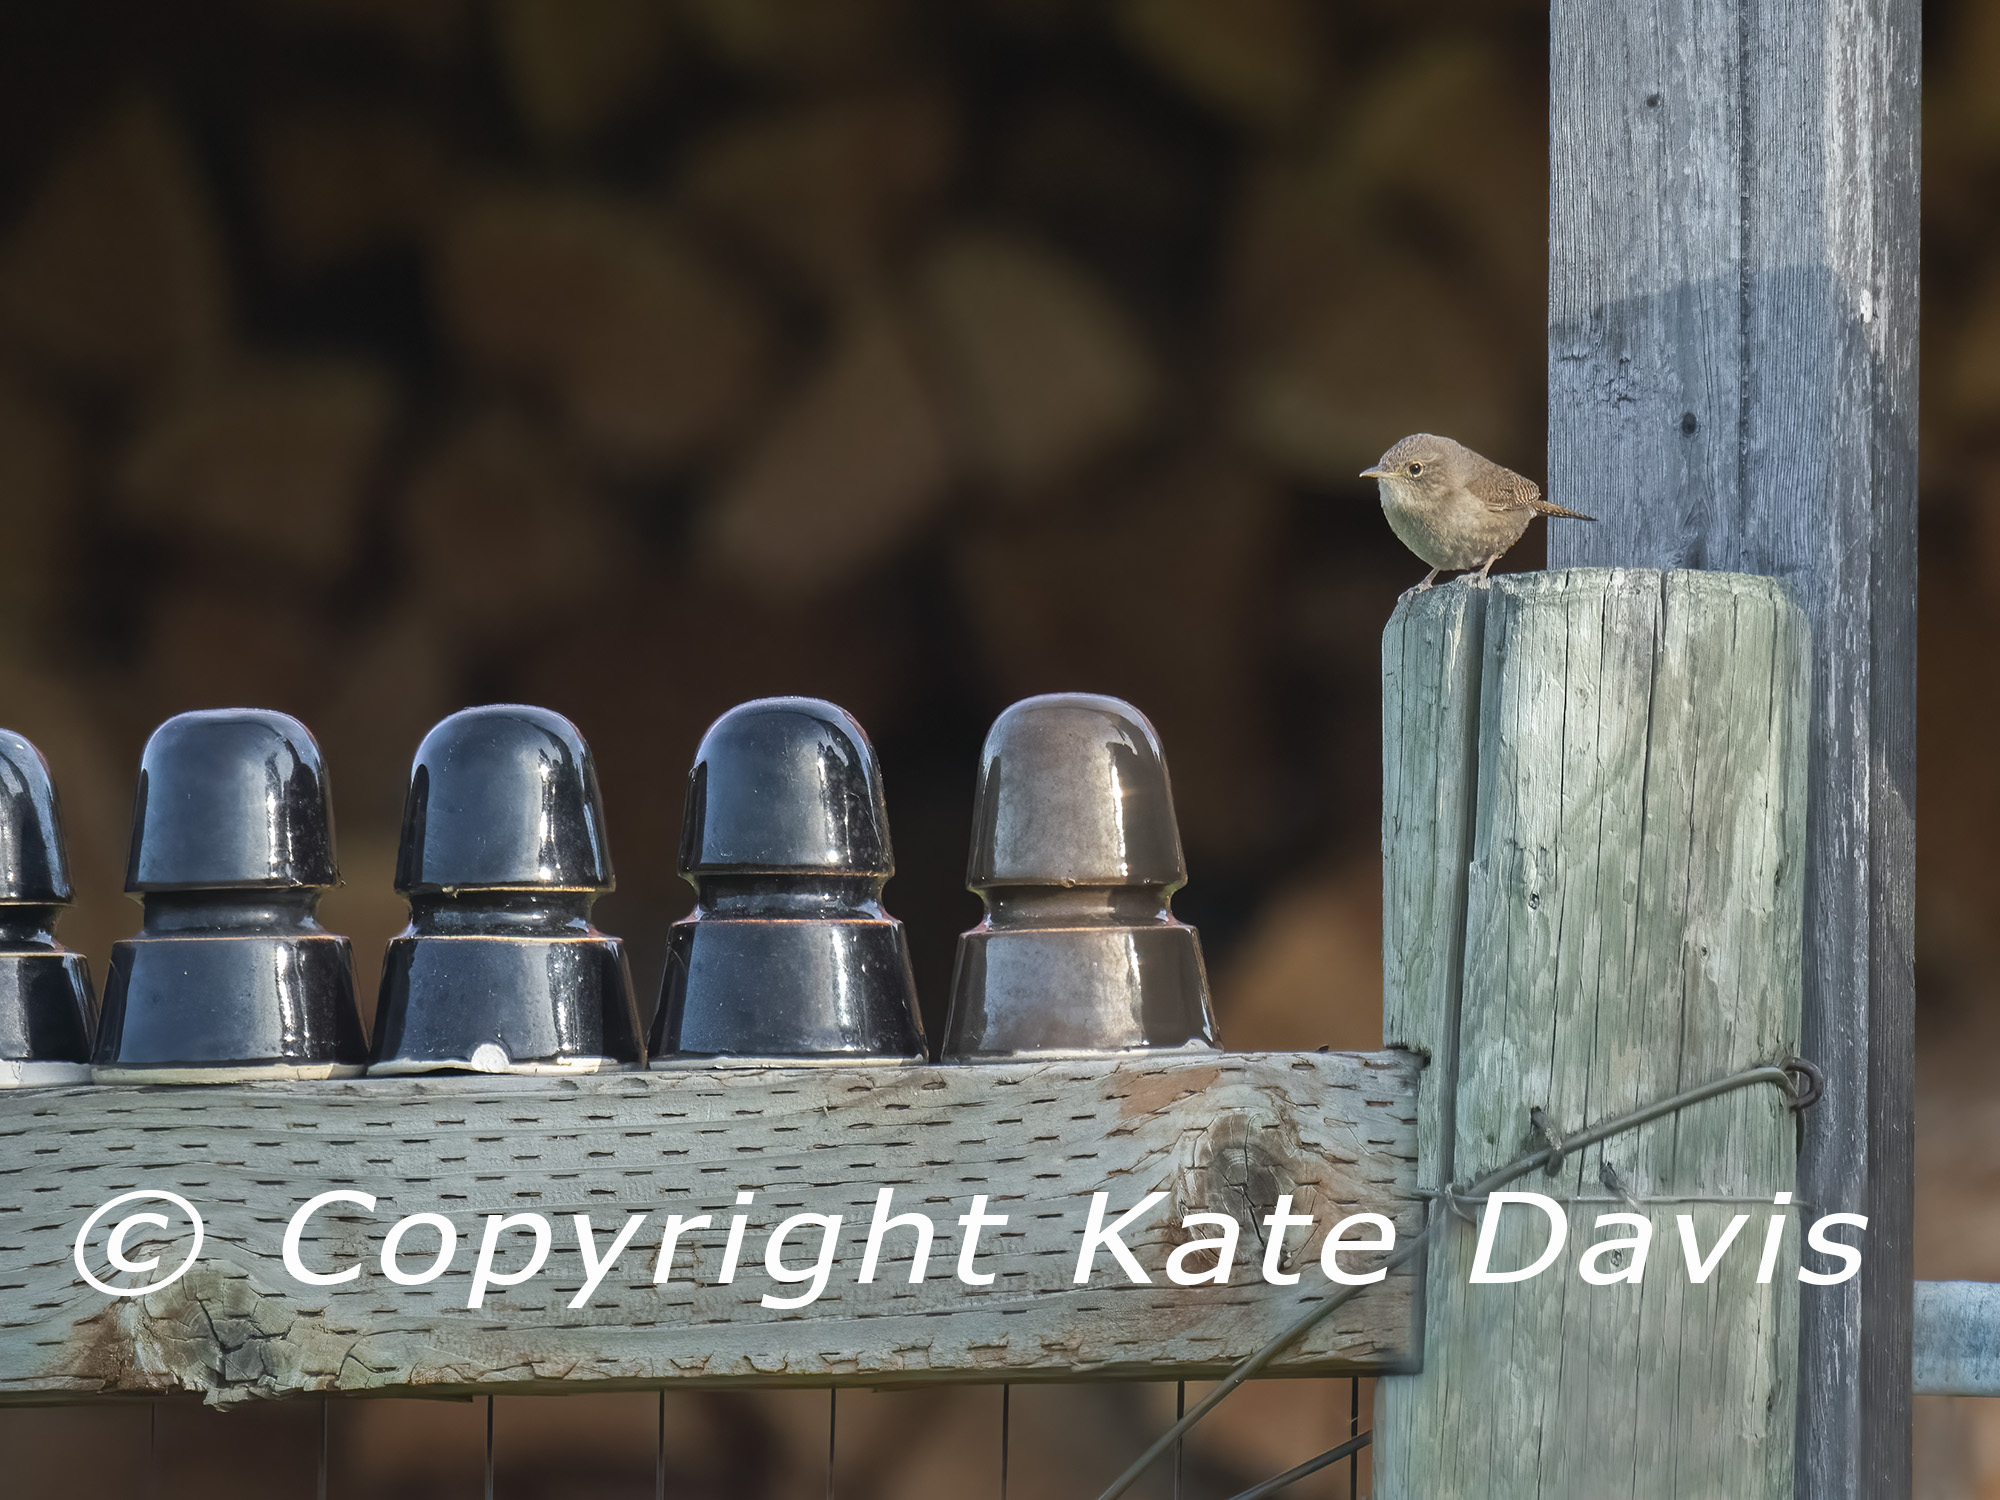 Insulators and House Wren in my yard